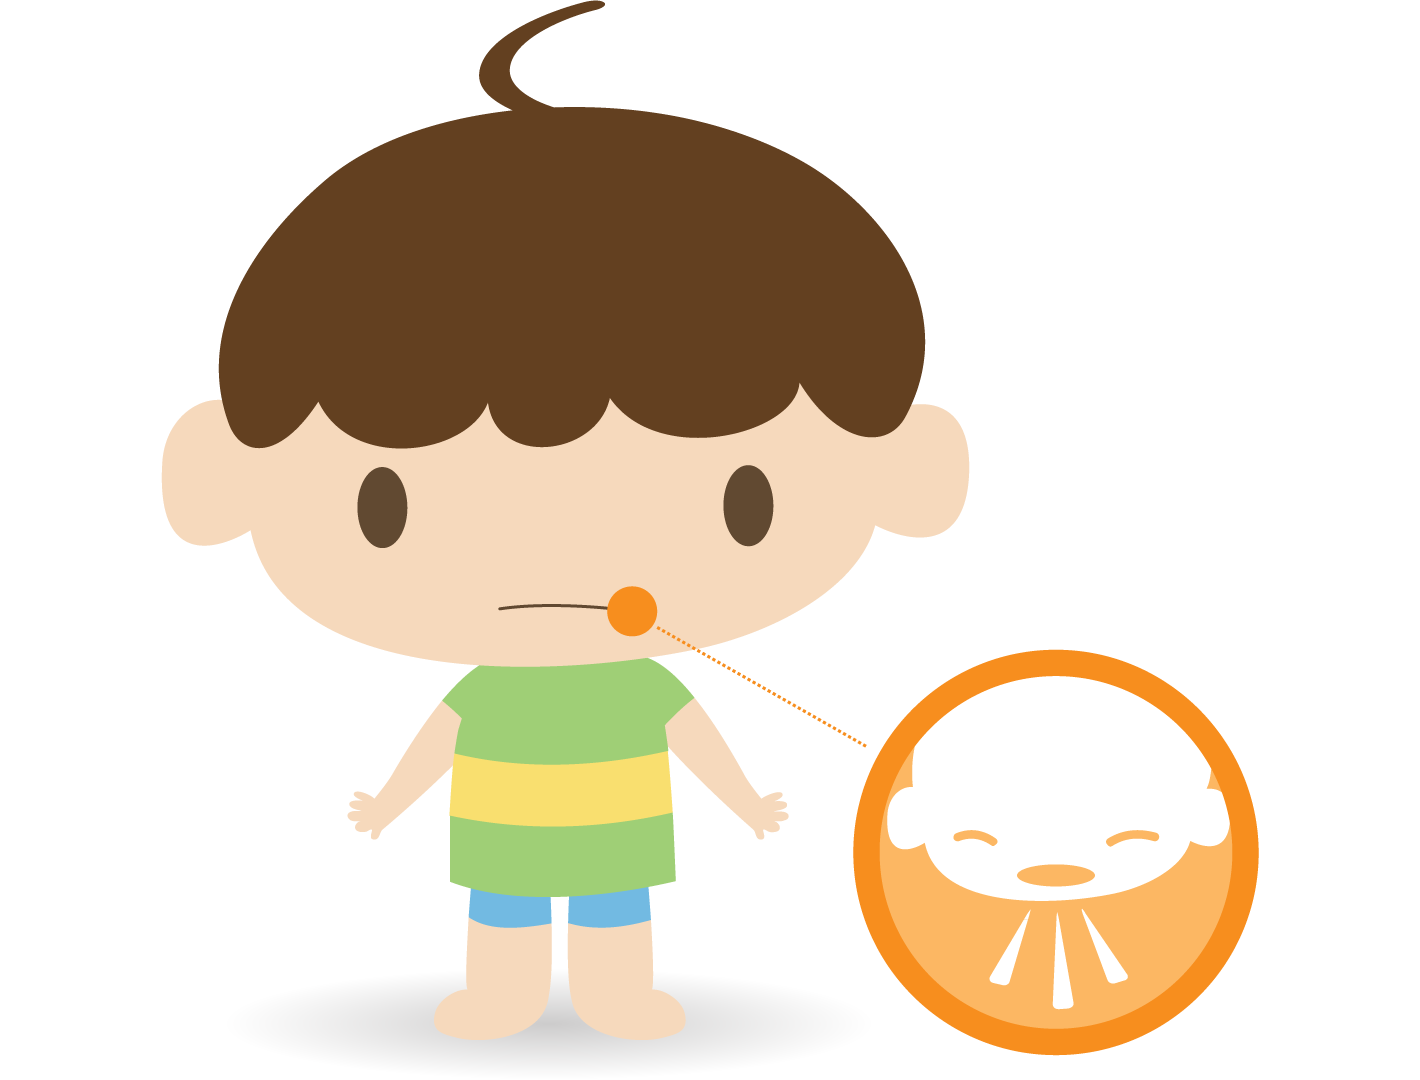 Pain clipart boy. Common cold alberta health